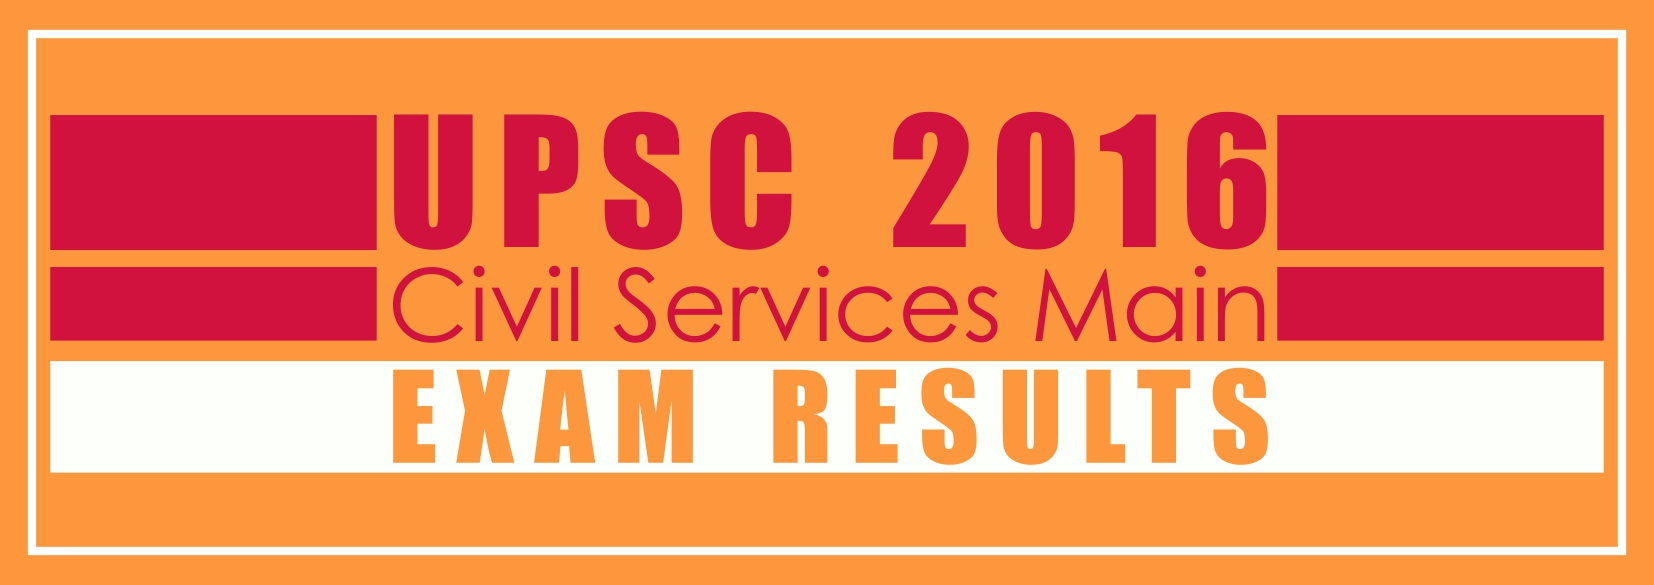 UPSC 2016 CSM exam results